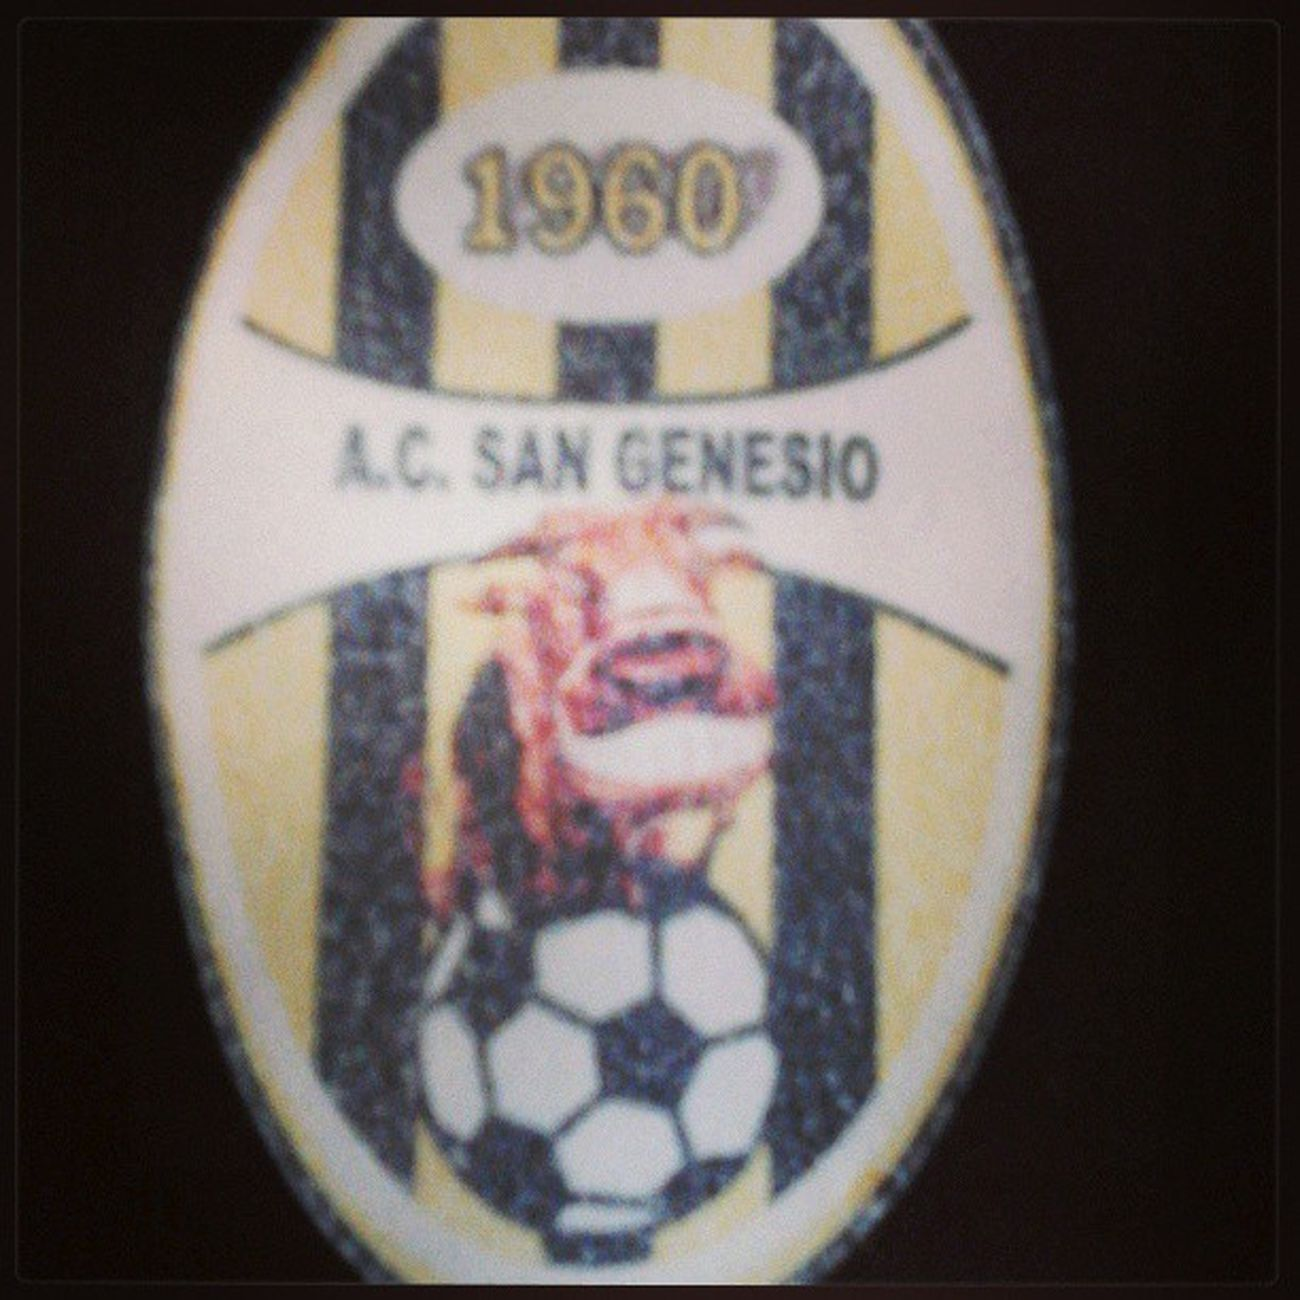 This Evening Match Vs Bareggio Go San Genesio !! Instagram Instaphoto Instaclub